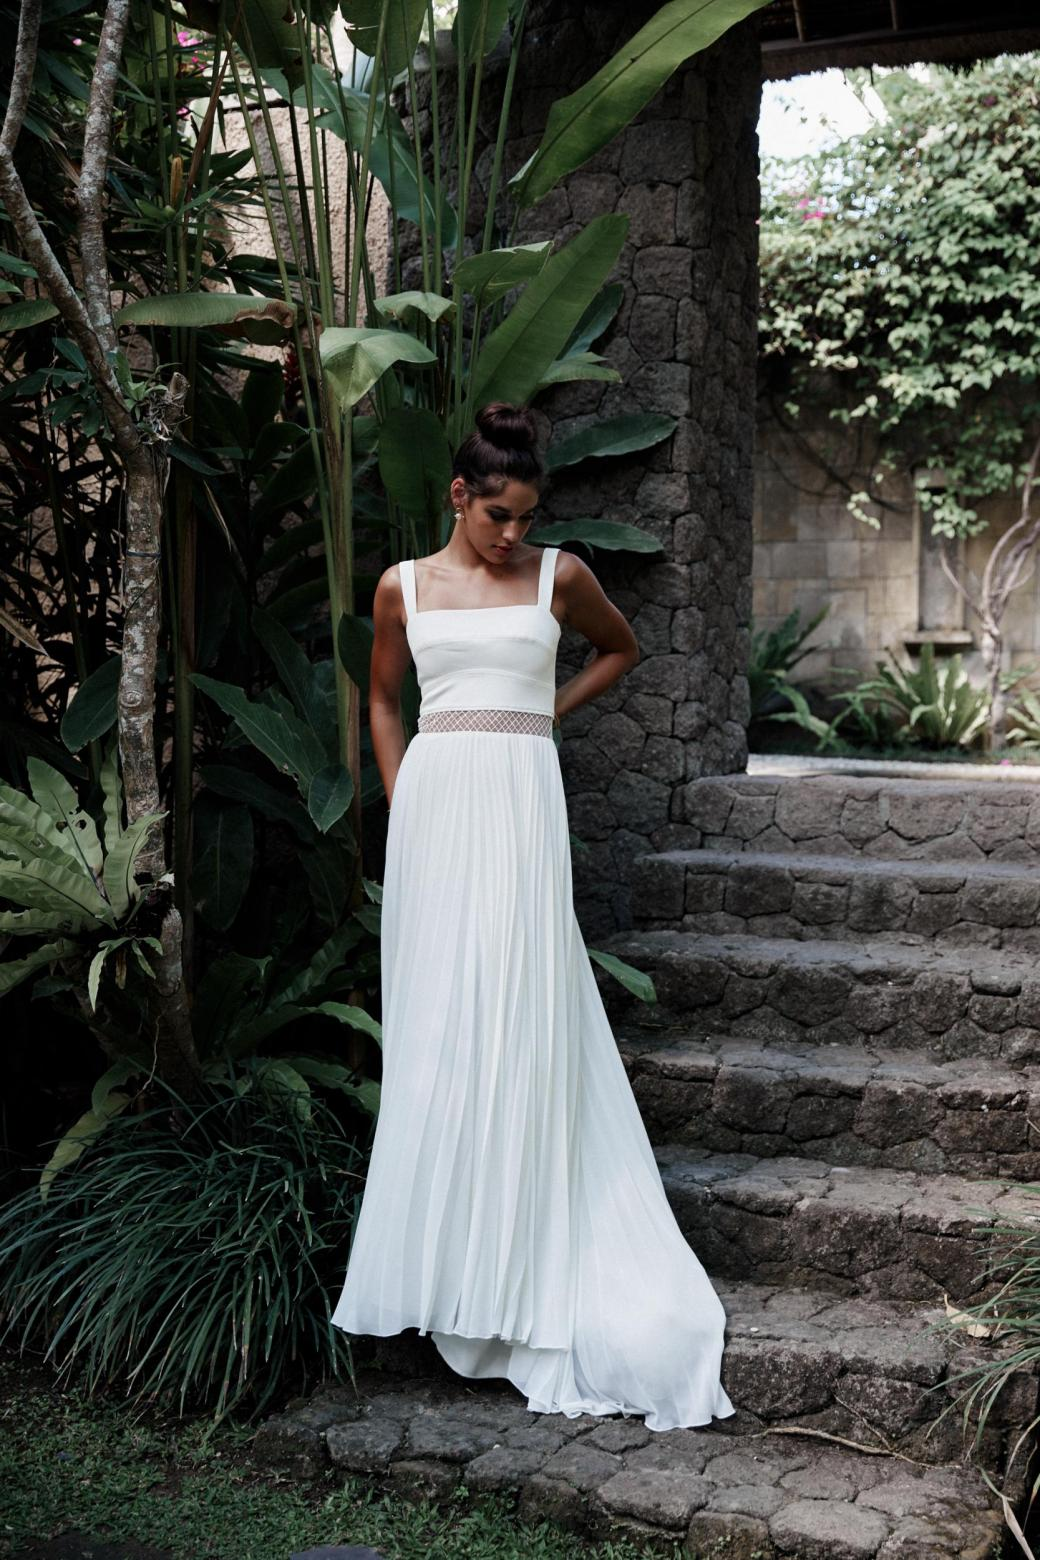 The Daisy gown by Karen Willis Holmes, flowy modified a-line wedding dress with square neckline.